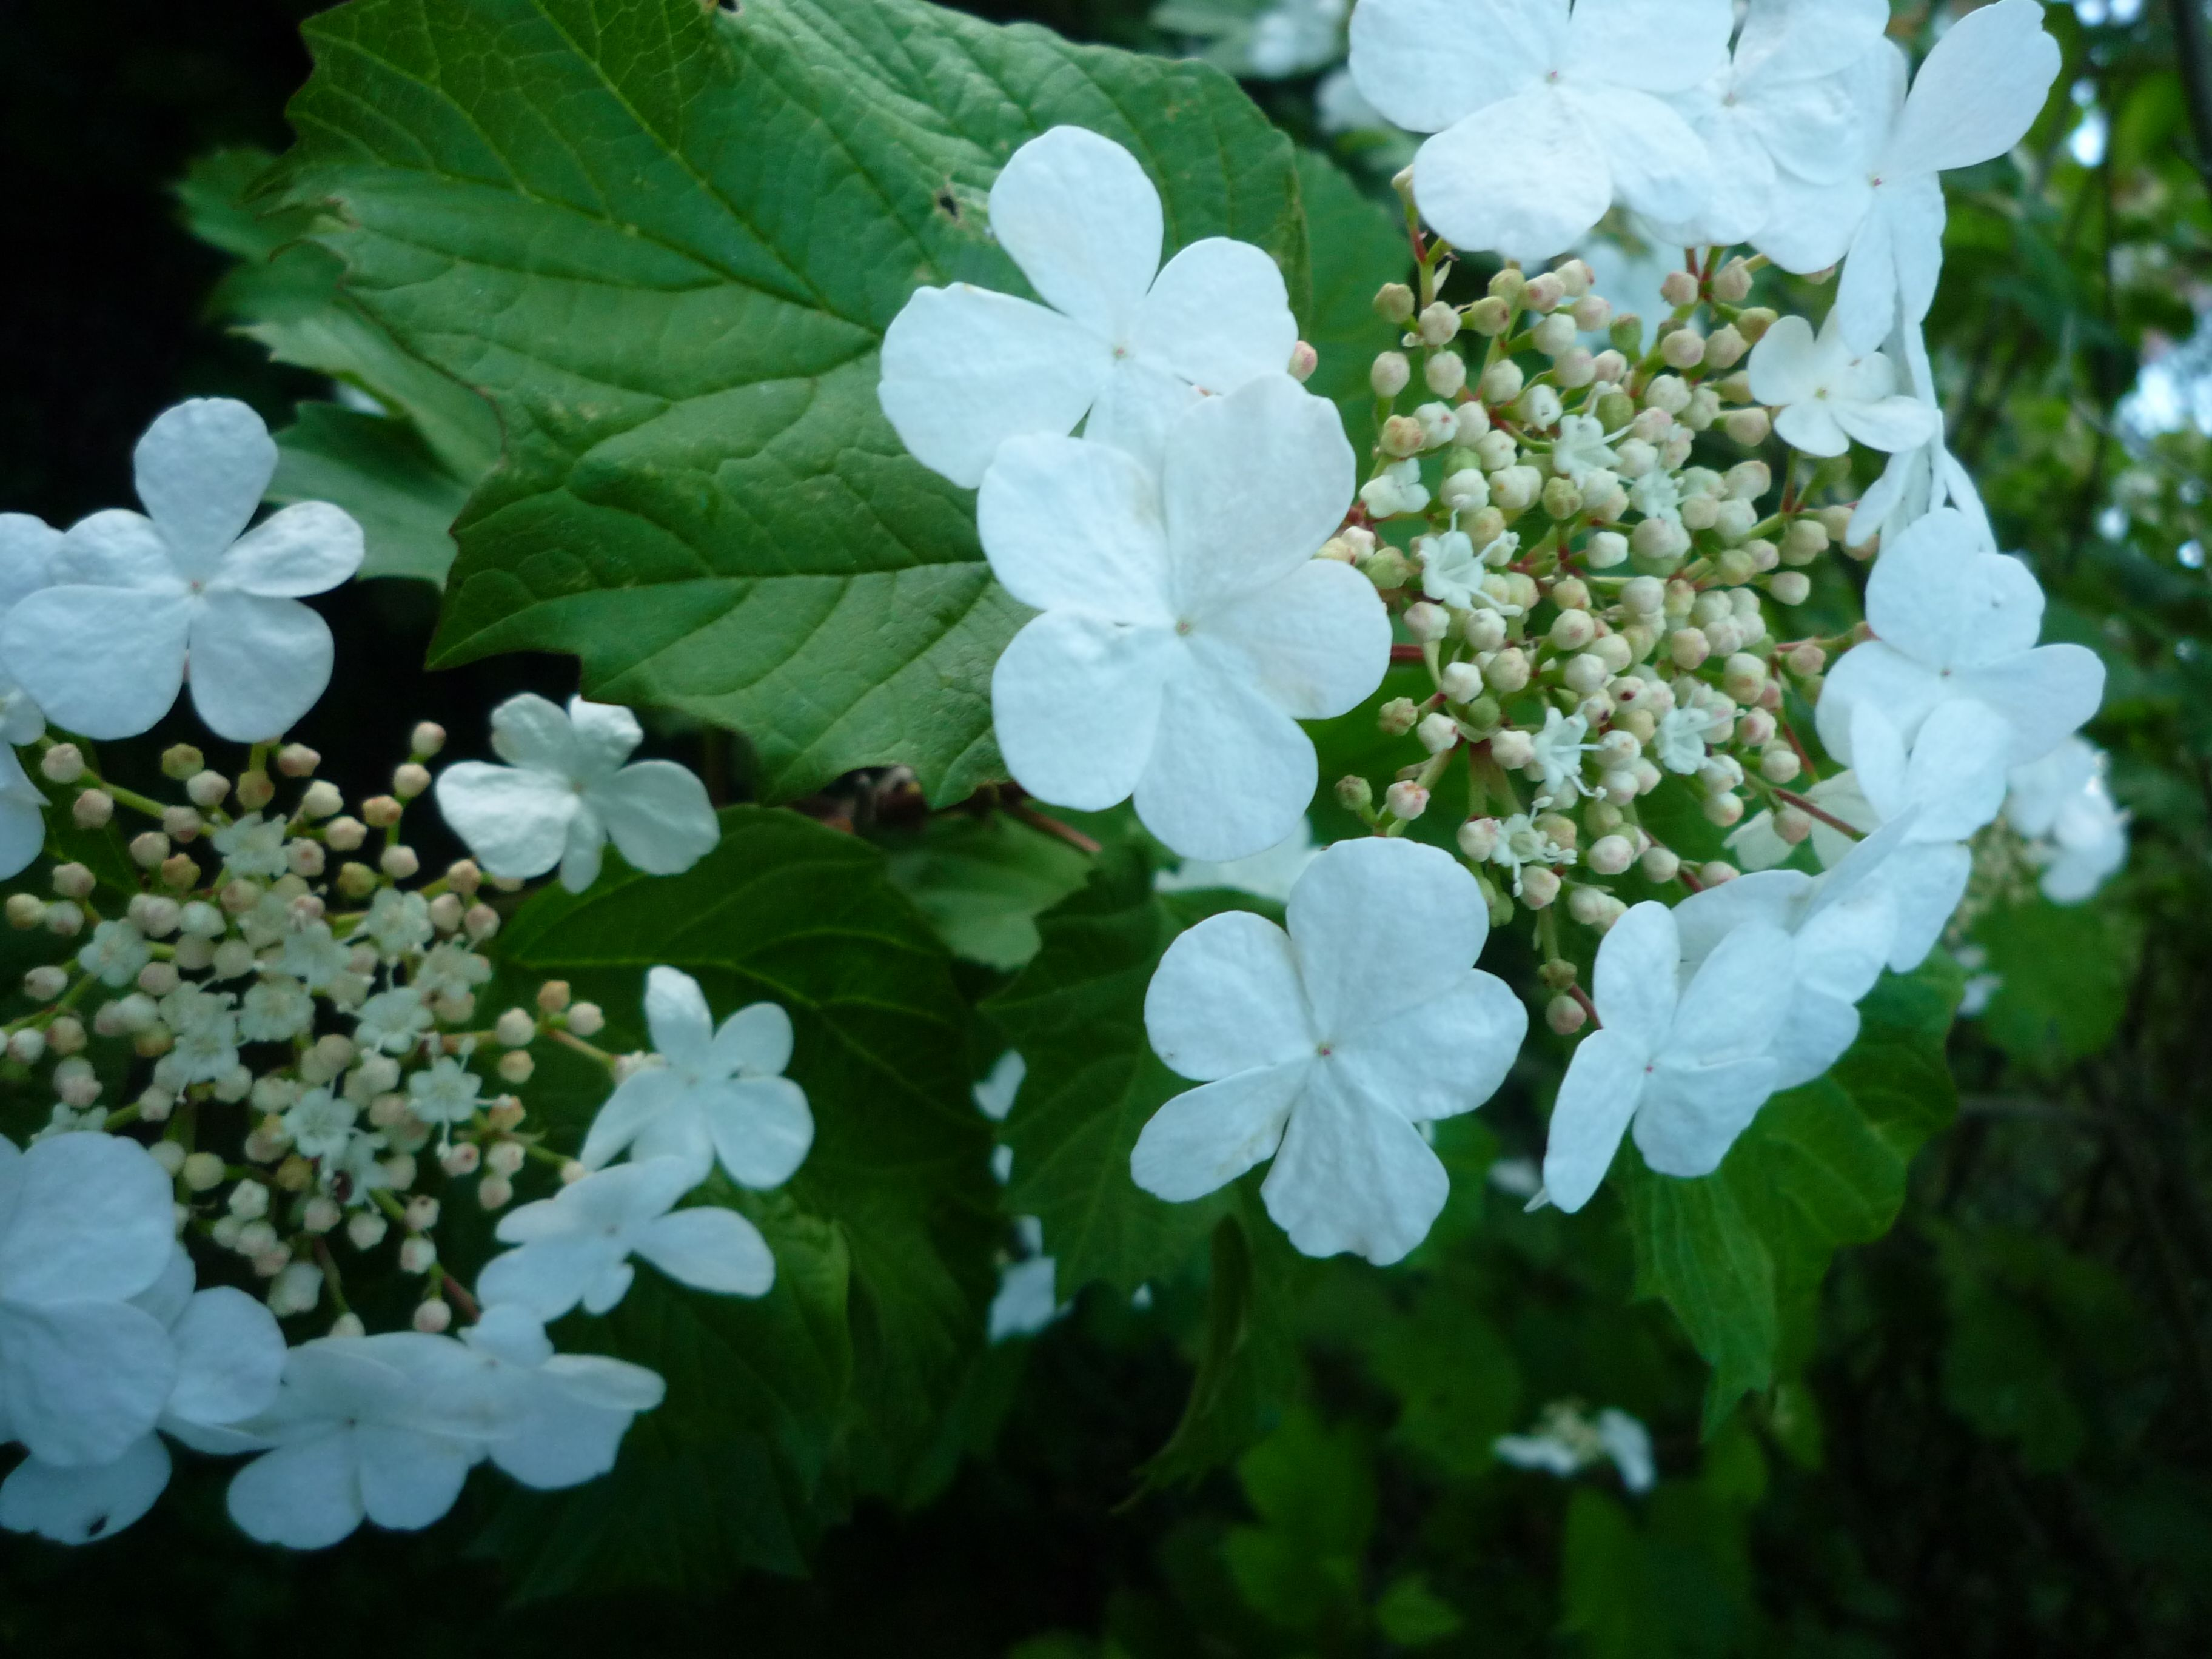 Guelder Rose not a rose at all, but a member of the Viburnum family with lovely clusters of creamy white flowers